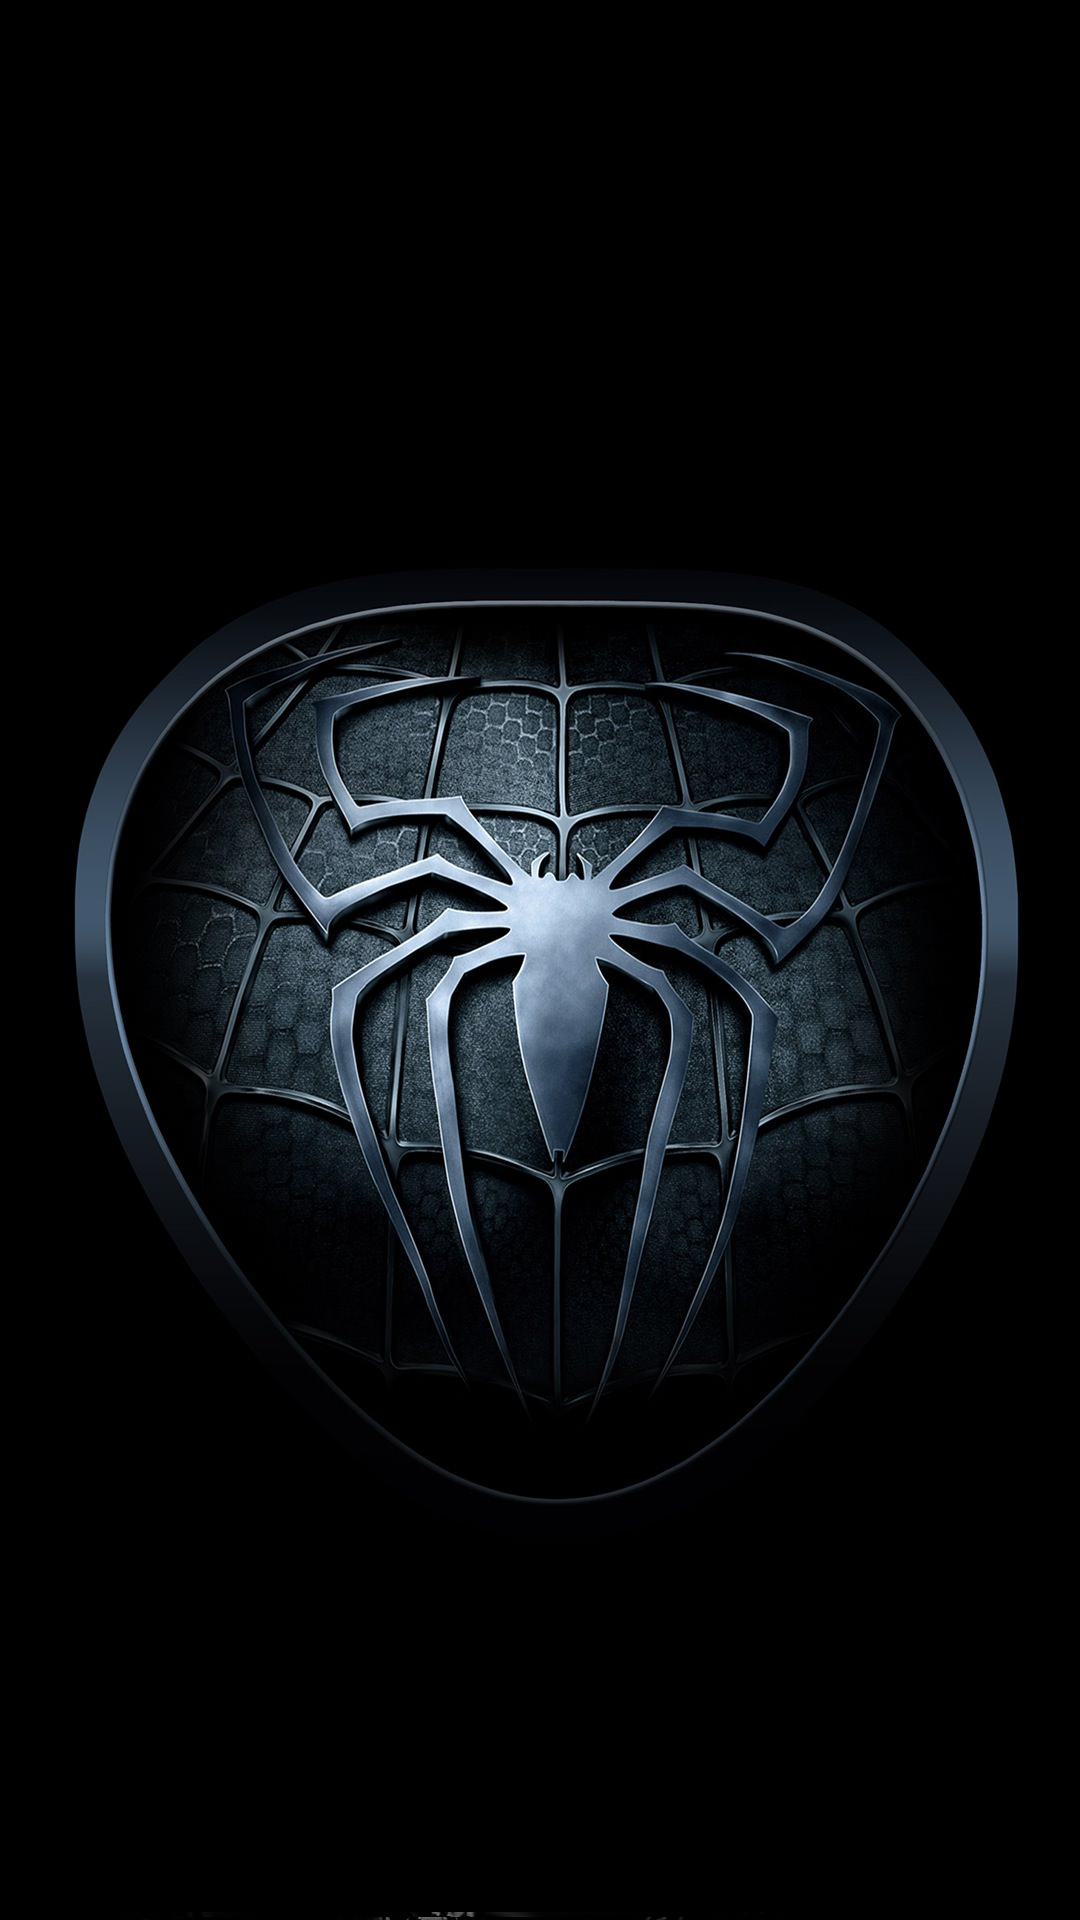 Black spider logo smartphone - Wallpapers android hd ...